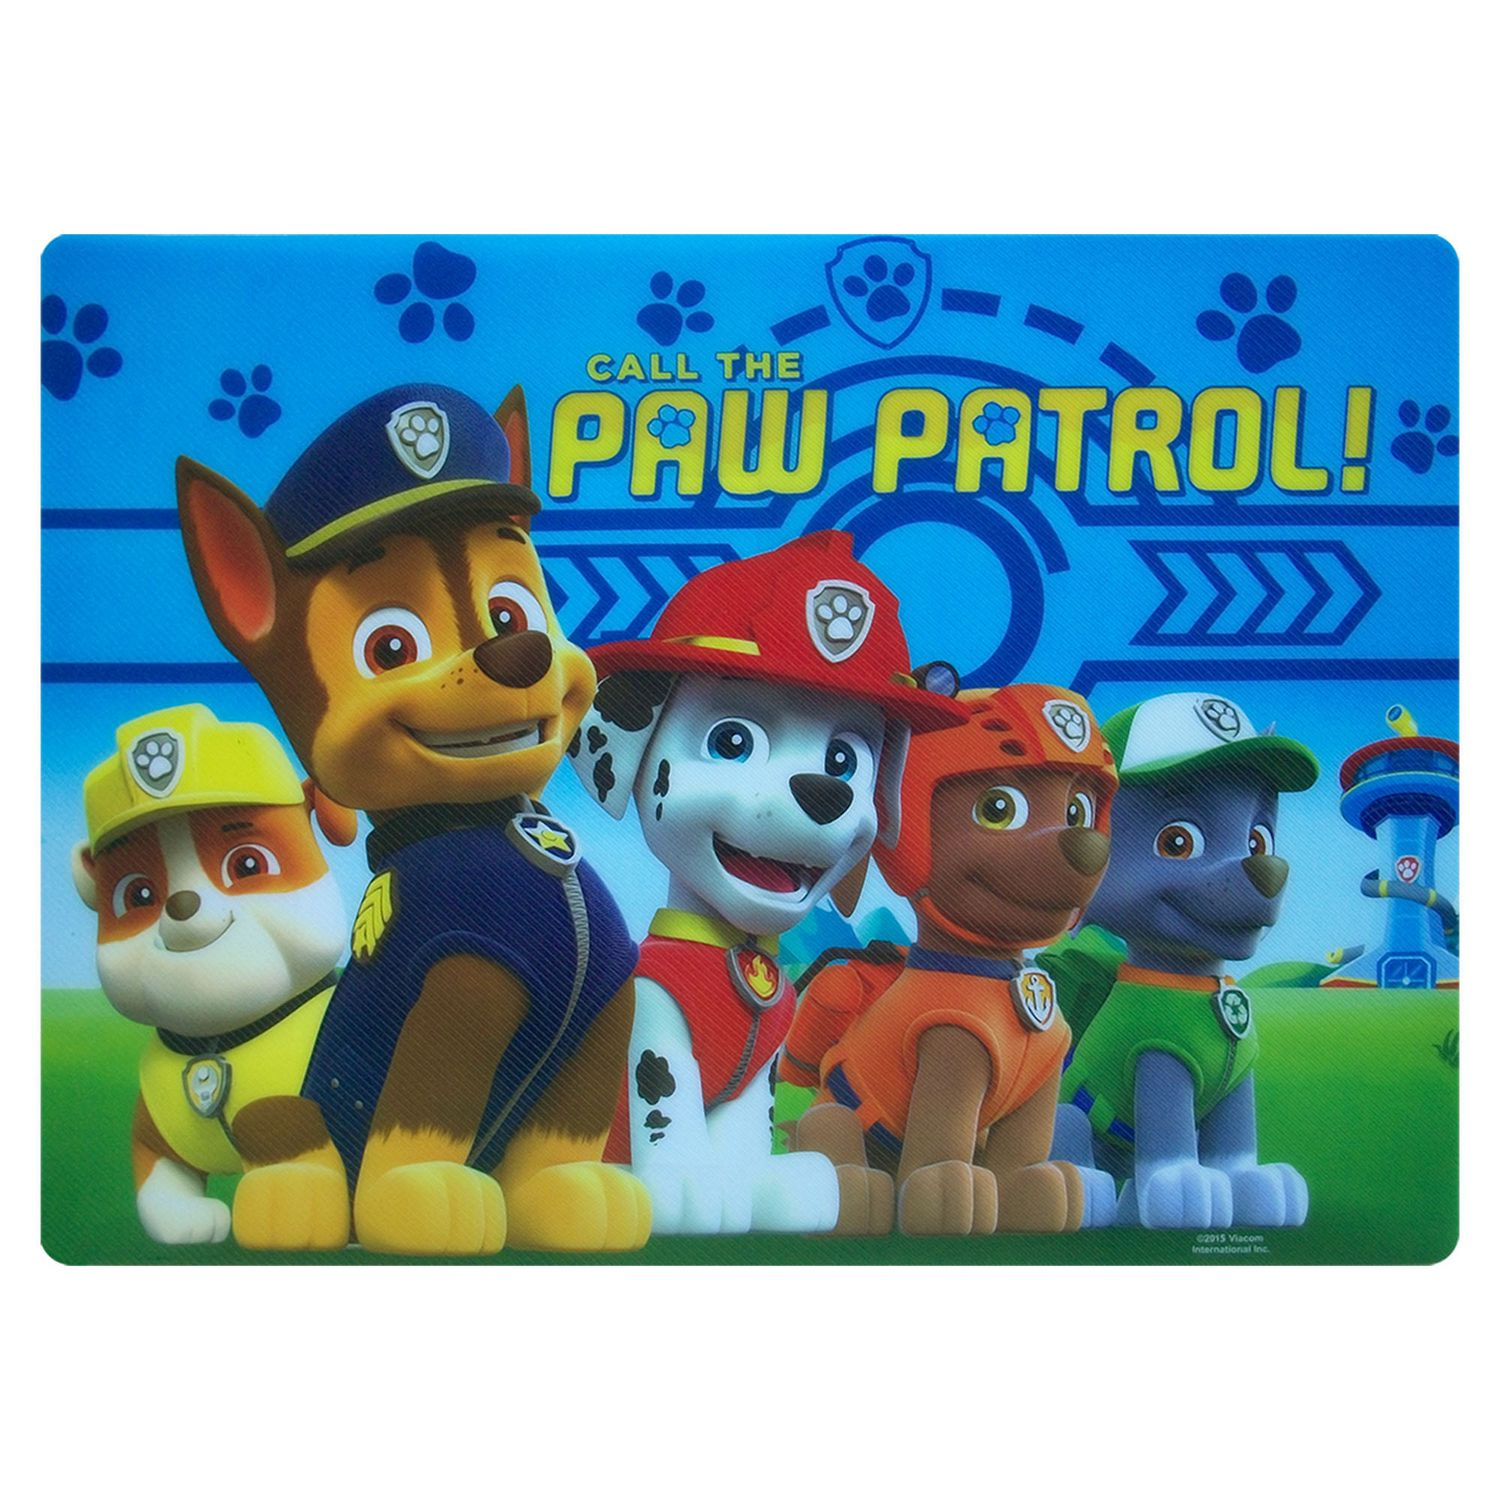 Paw Patrol Quot Call Waiting Quot Placemat Walmart Canada